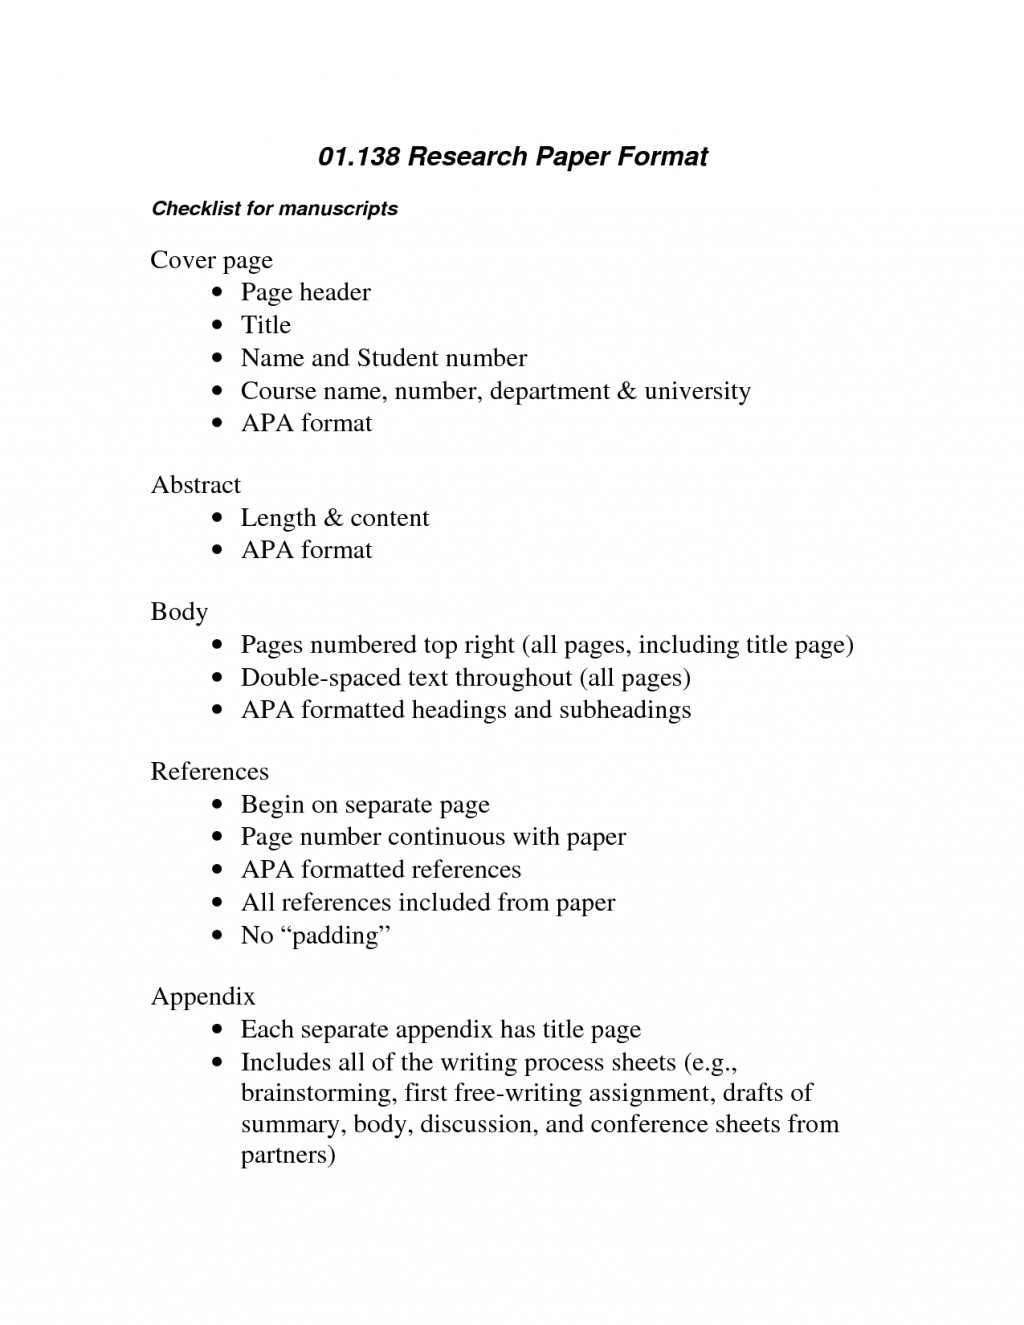 004 Outlines For Researchs Apa Awful Research Papers Outline Paper Style Examples Sample Large